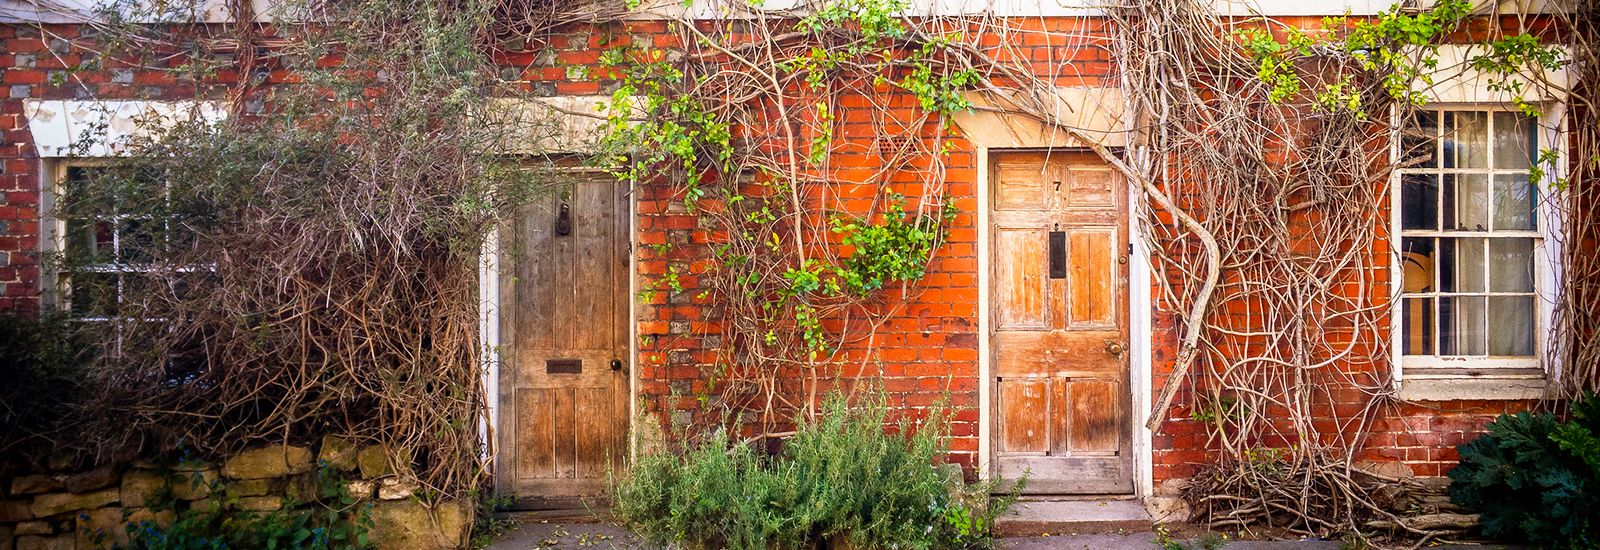 Two doorways with plants growing up the walls